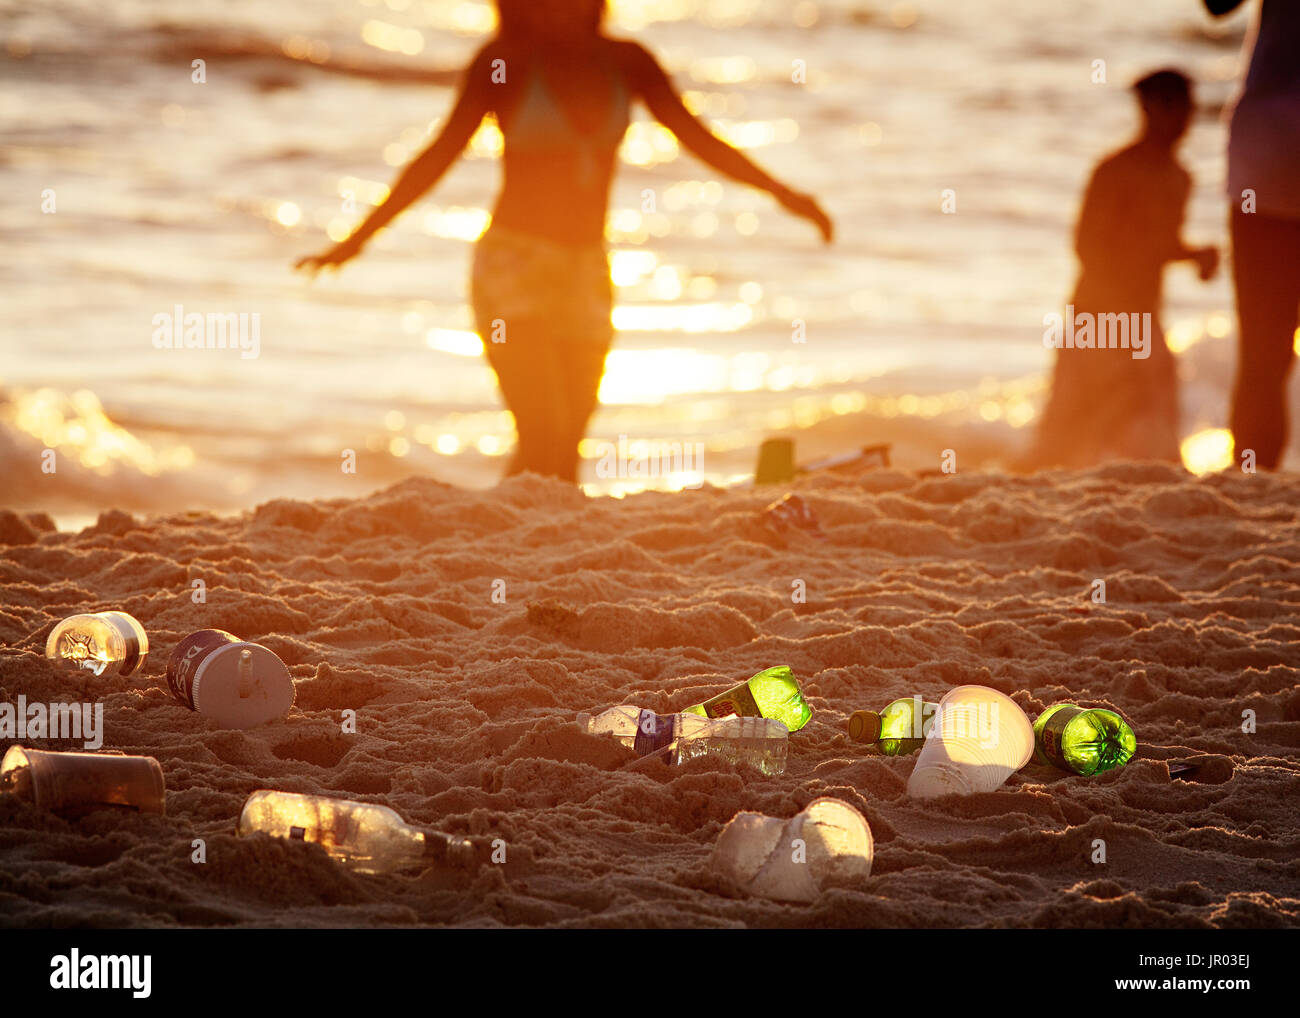 Plastic litter left behind by spring breakers at Panama City Beach, Florida. - Stock Image